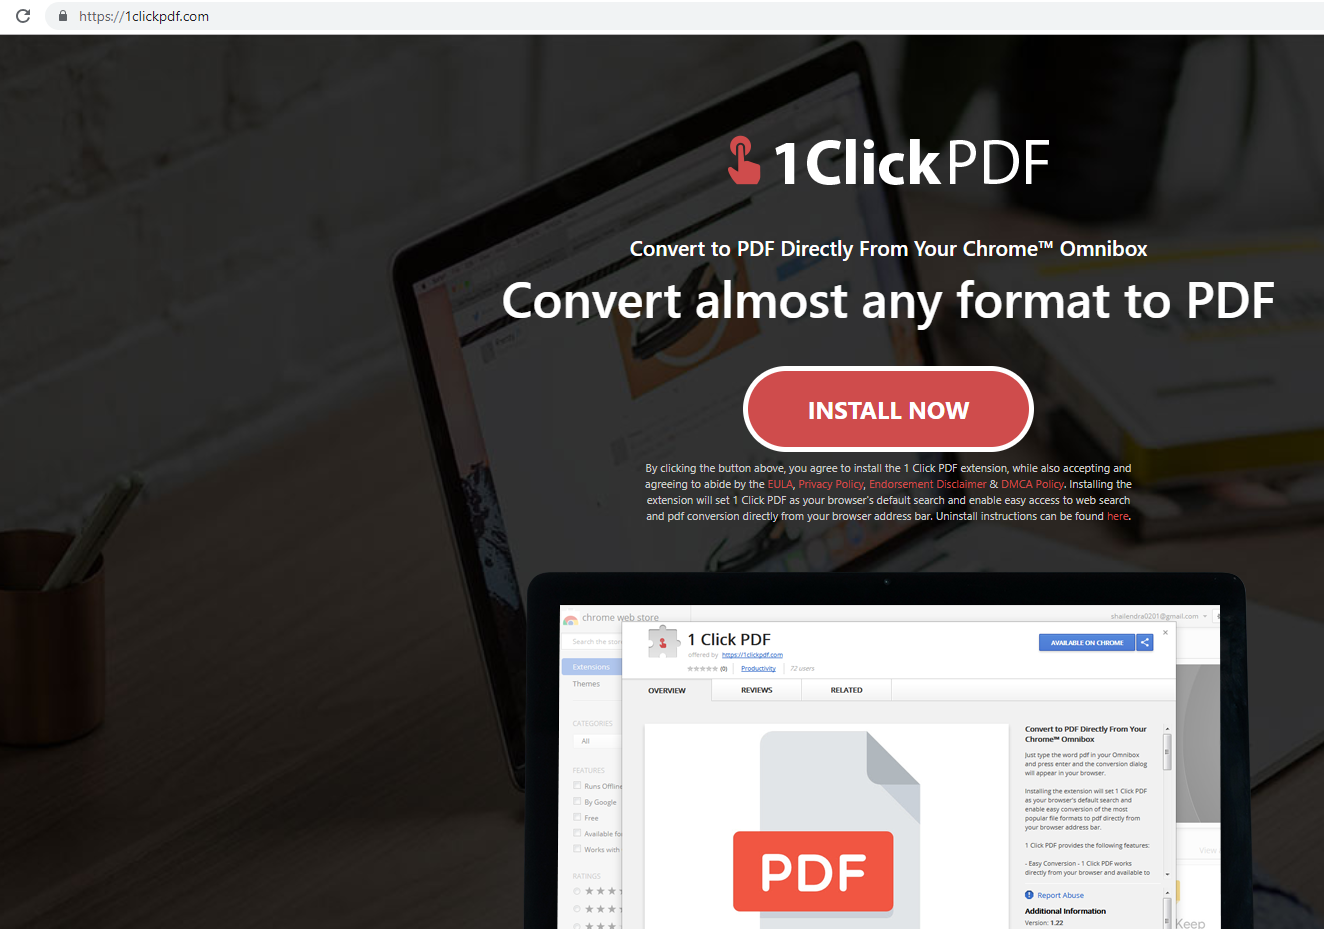 ازاله1ClickPDF from Mac